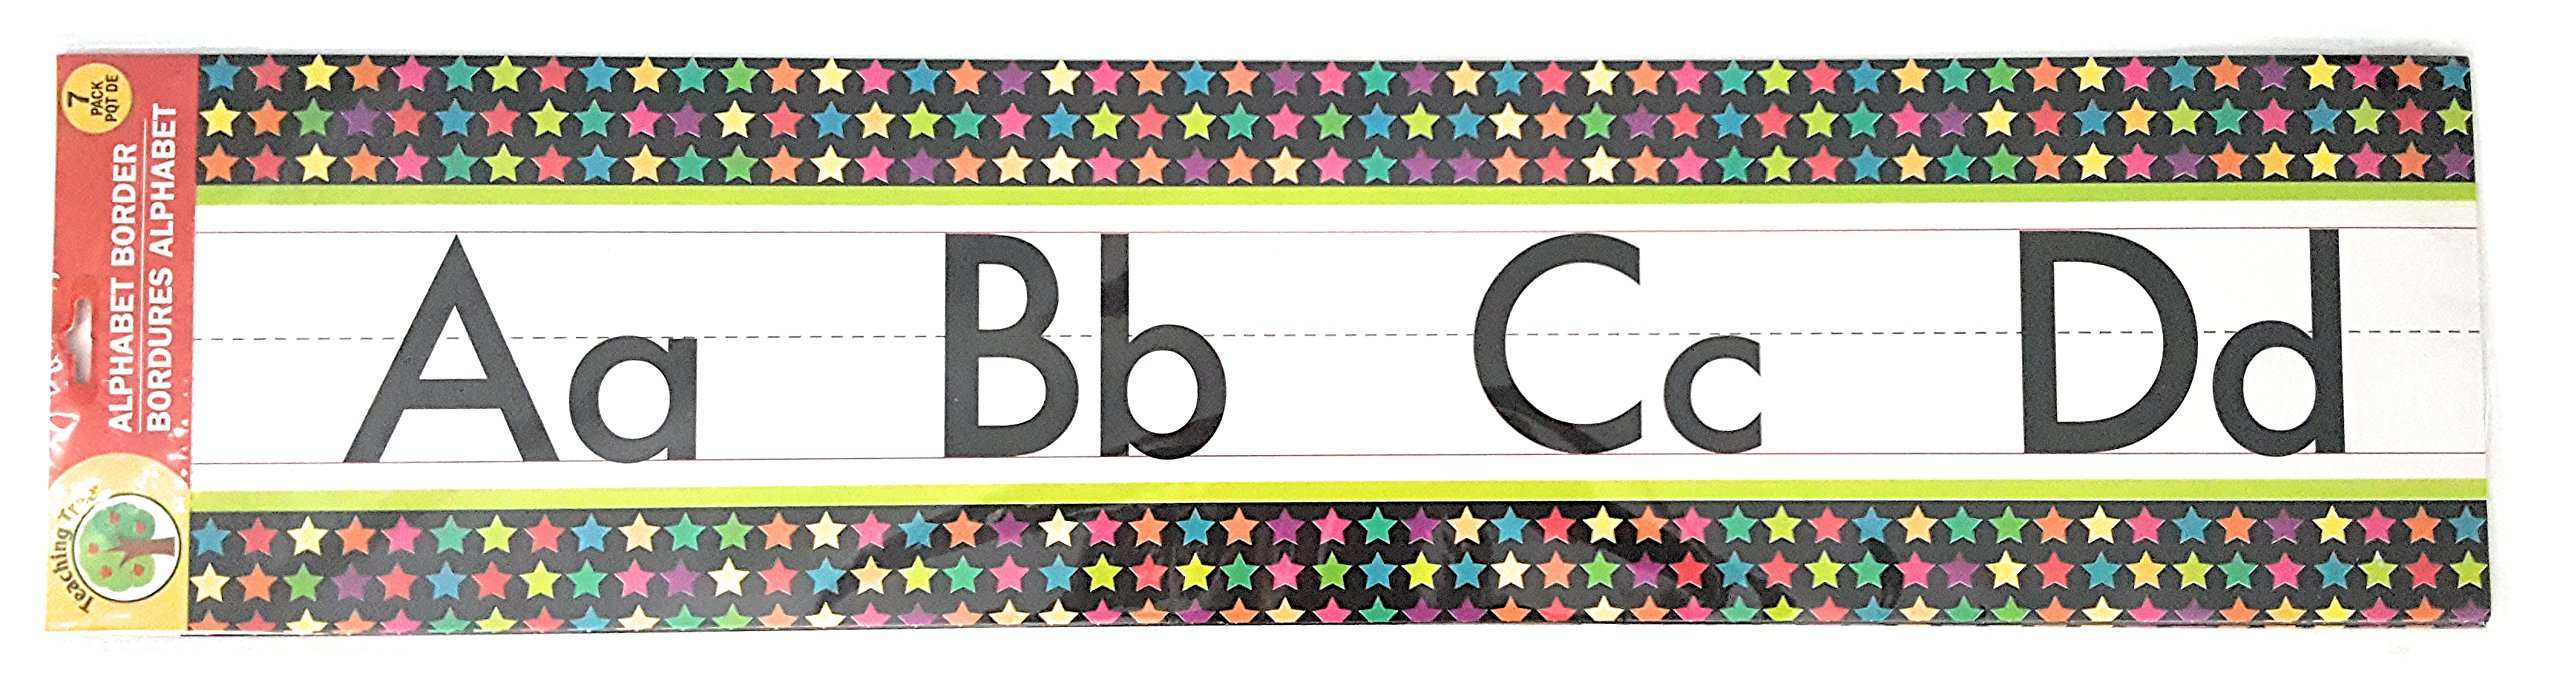 Teaching Tree Manuscript Alphabet Bulletin Back to School Board Set Creative Strips School Office Resources Scholastic Teacher Teacher's Bulletin Trim Wall Border Decal Classroom Decoration Stars 1